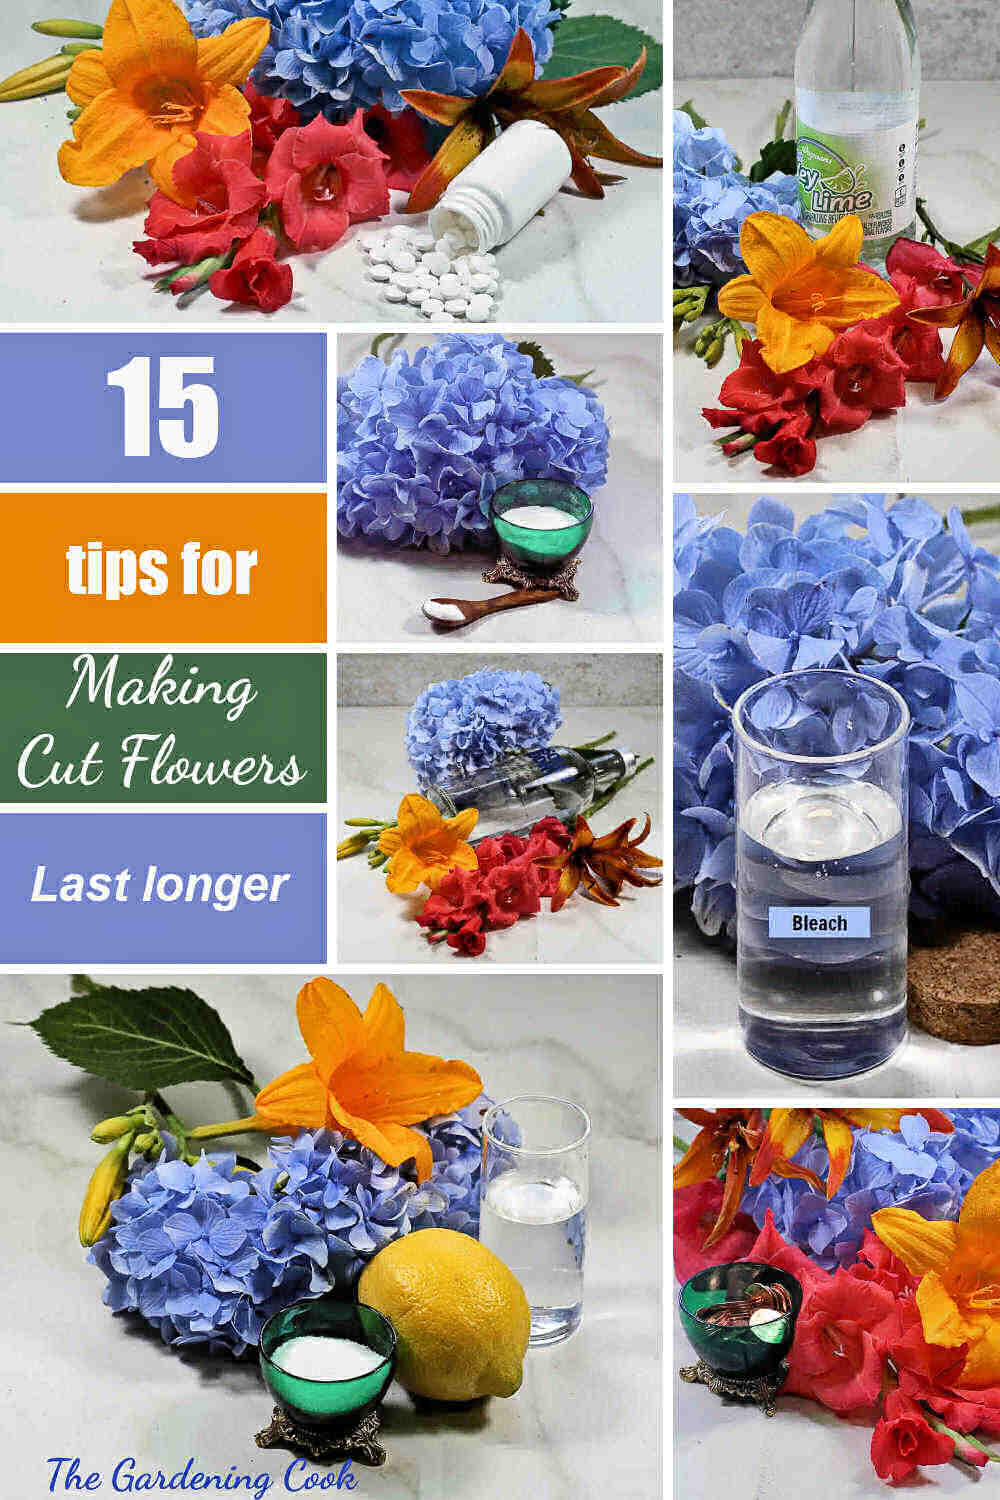 Fresh cut flowers and household ingredients with words reading 15 tips for making cut flowers last longer.